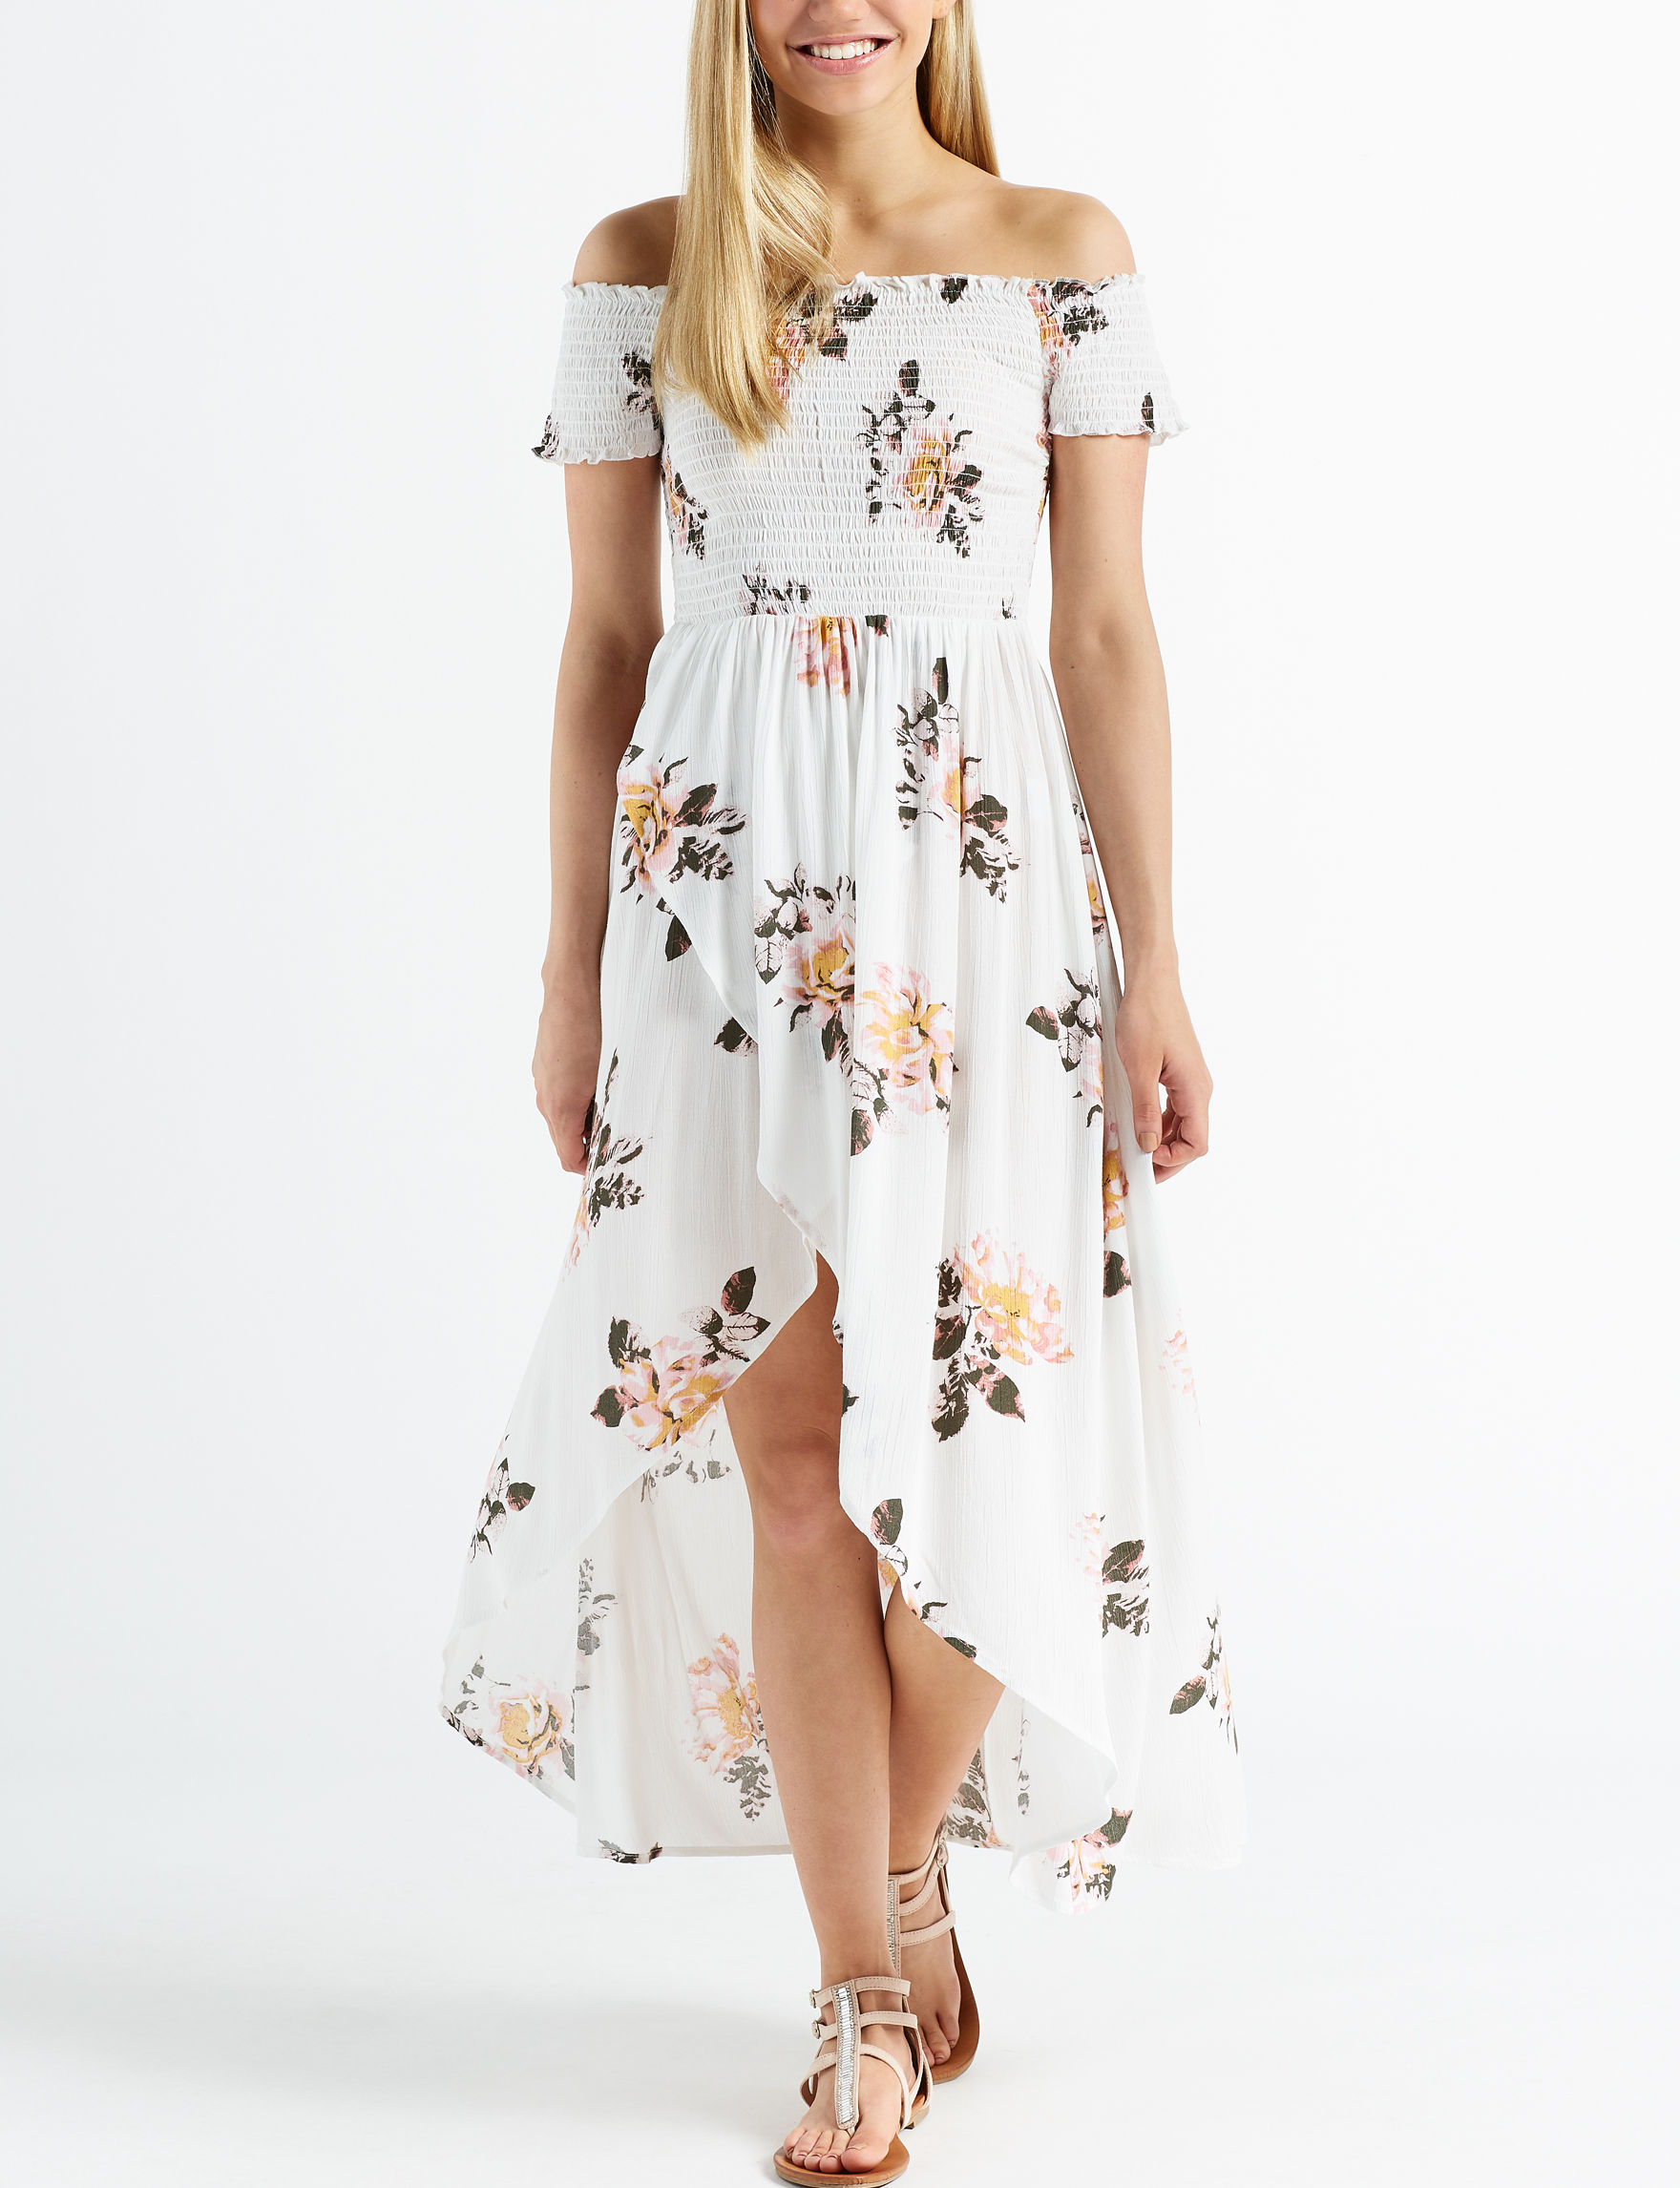 Wishful Park Ivory Floral Everyday & Casual